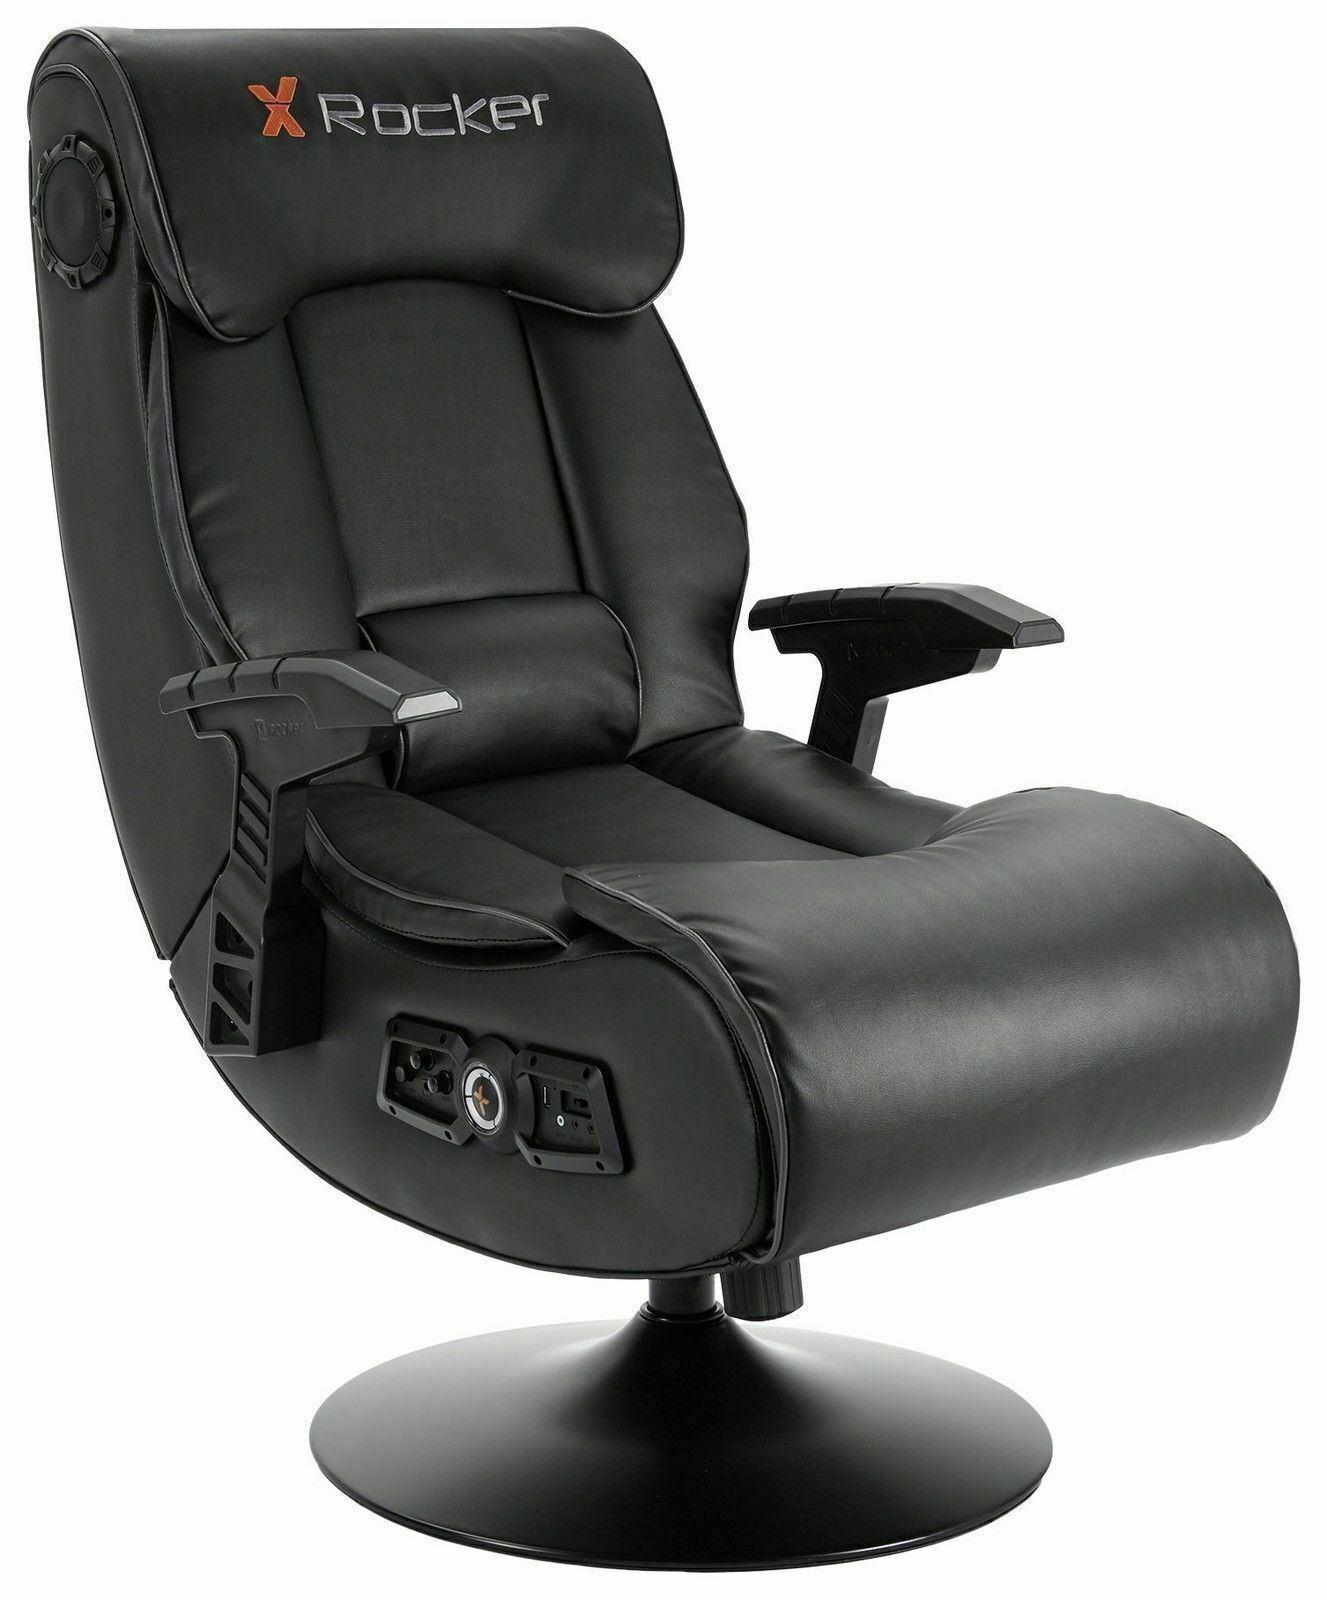 Phenomenal X Rocker Elite Pro Ps4 Xbox One 2 1 Gaming Chair See Pictures First Rip Sewed Caraccident5 Cool Chair Designs And Ideas Caraccident5Info